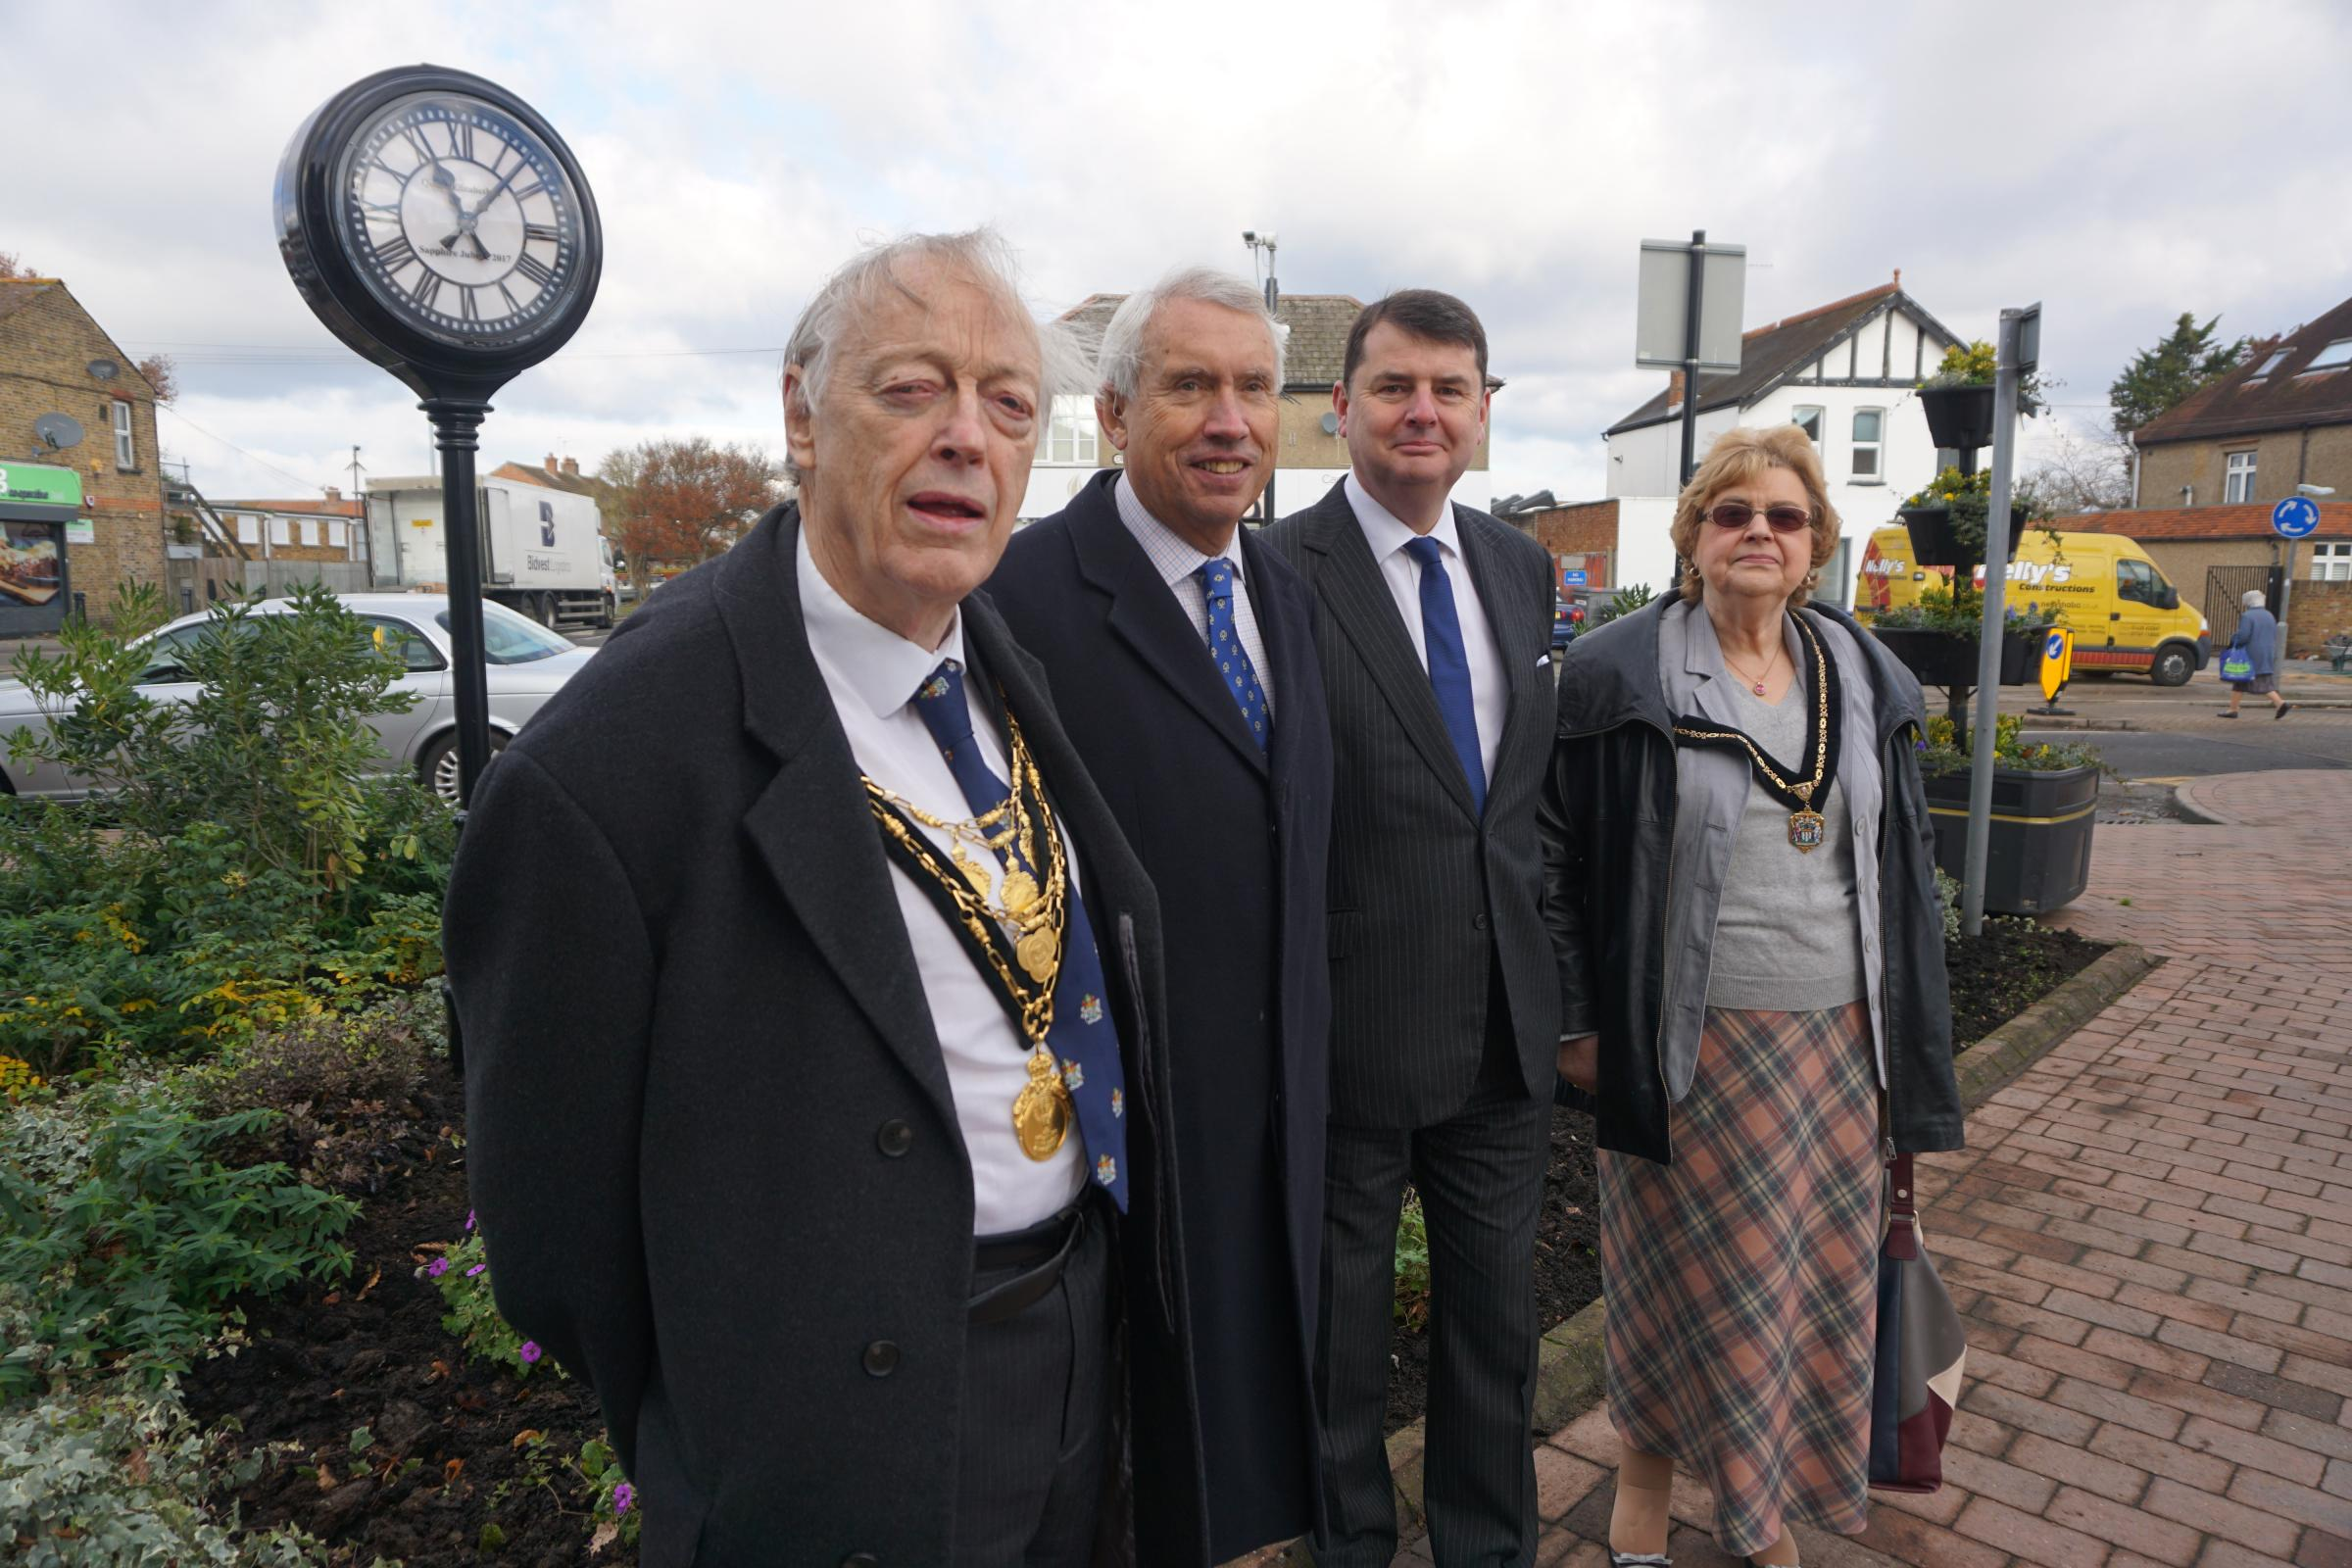 The new clock unveiled by the Mayor and Mayoress and the Lord Lieutenant